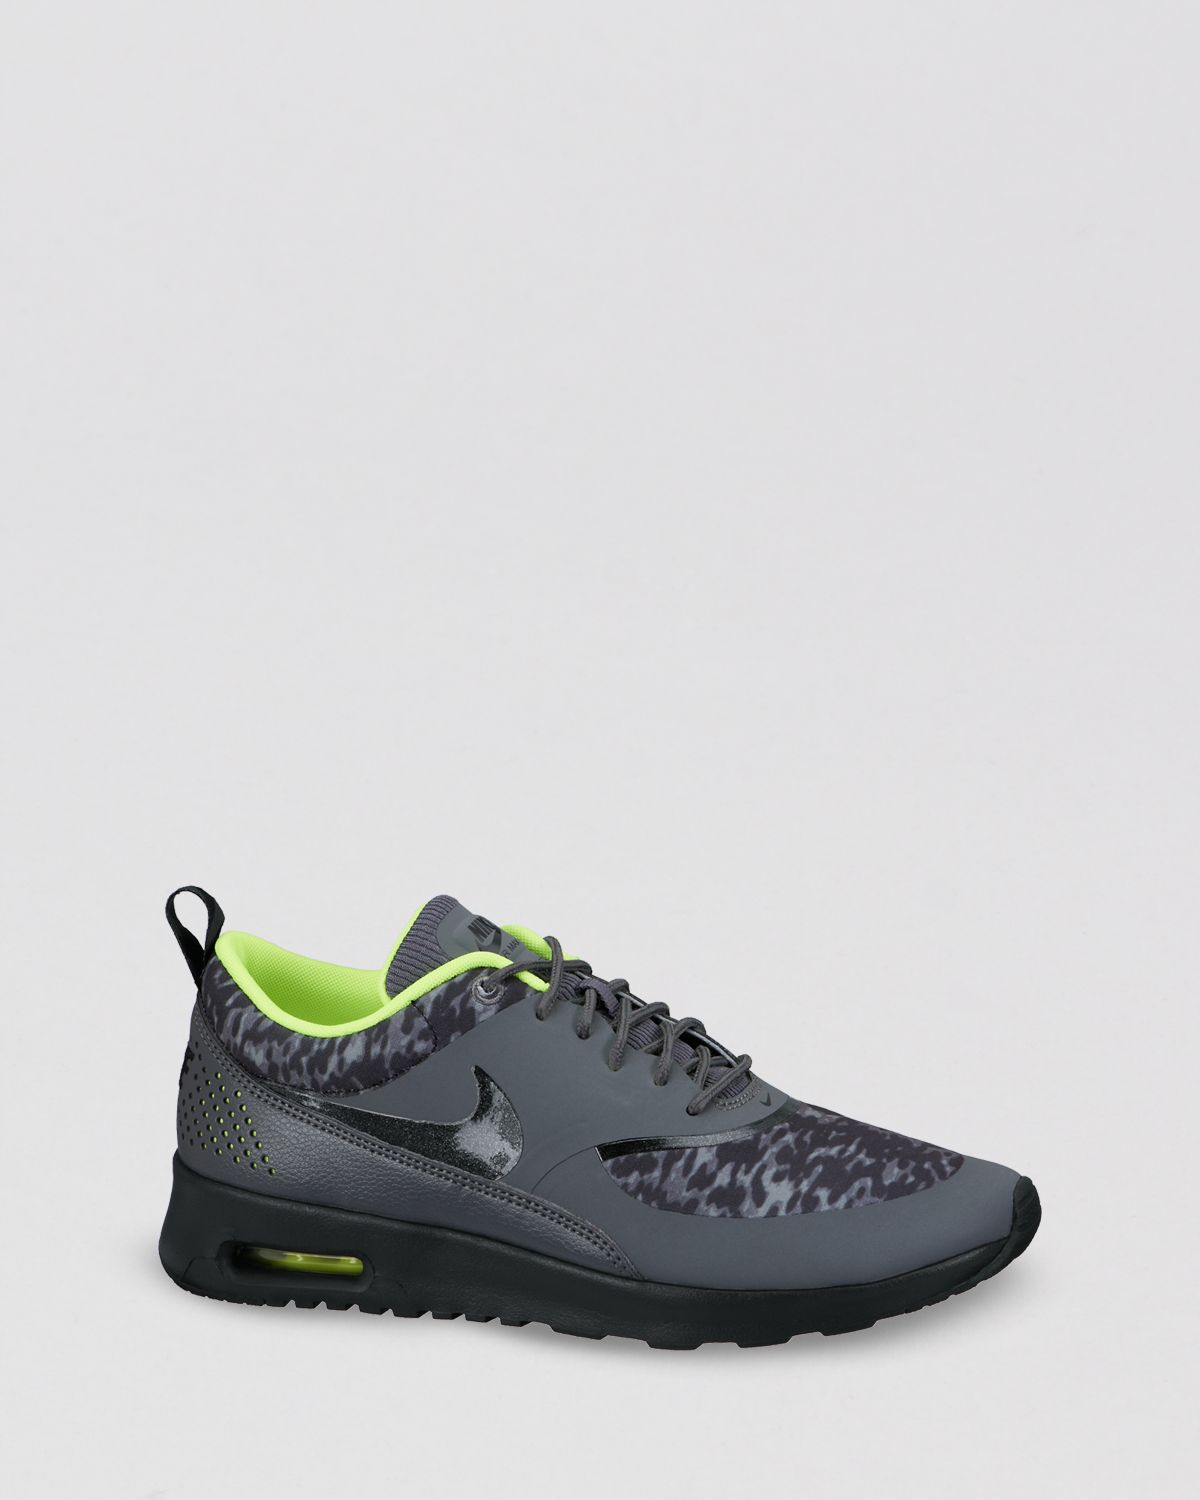 Lyst Nike Lace Up Sneakers Women'S Air Max Thea Print in